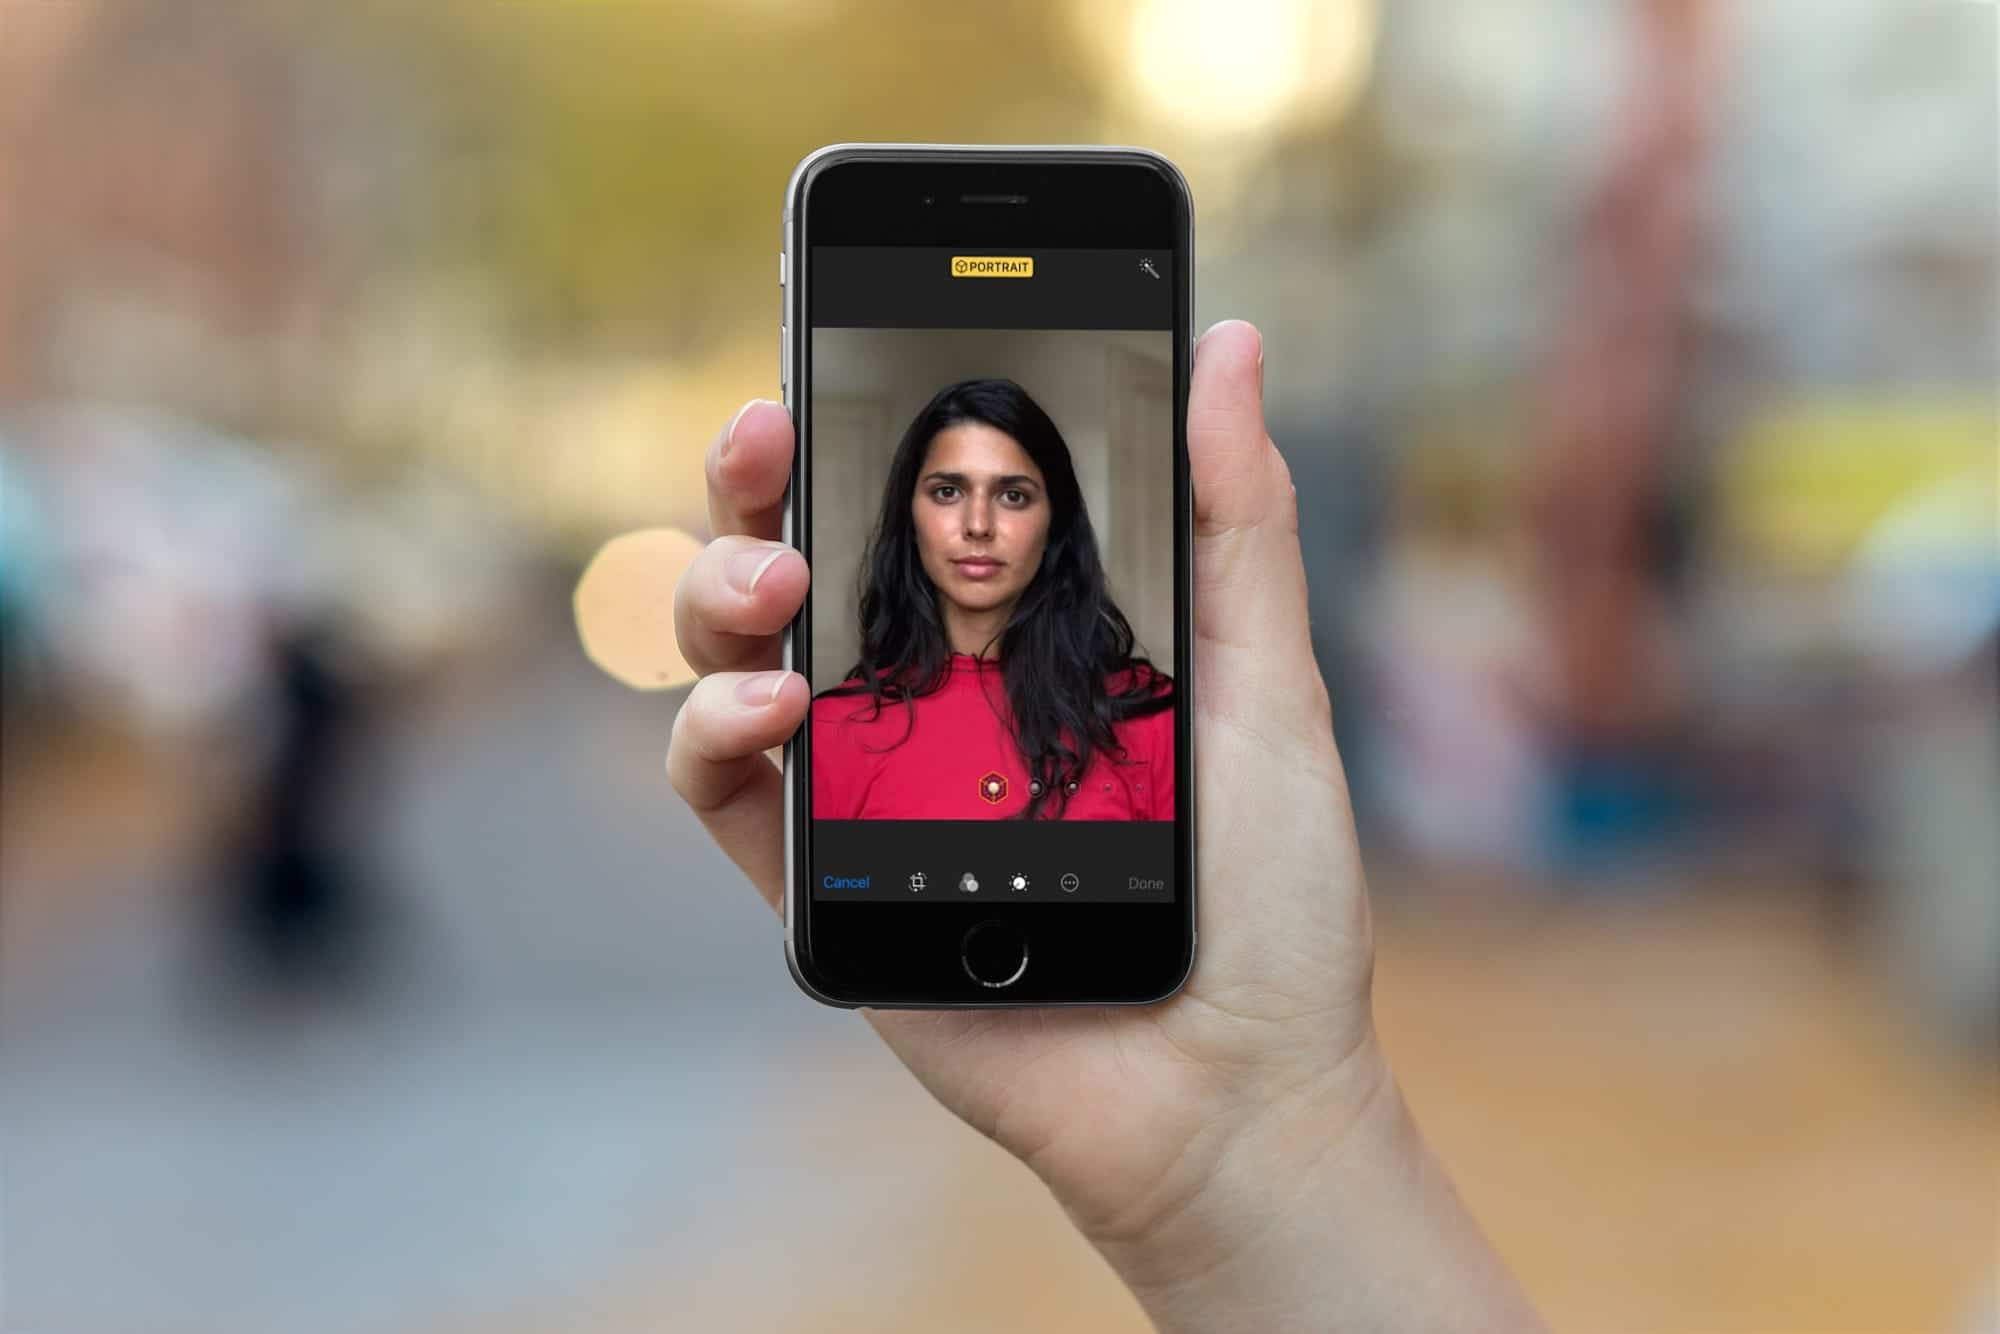 How To Spy Using Iphone